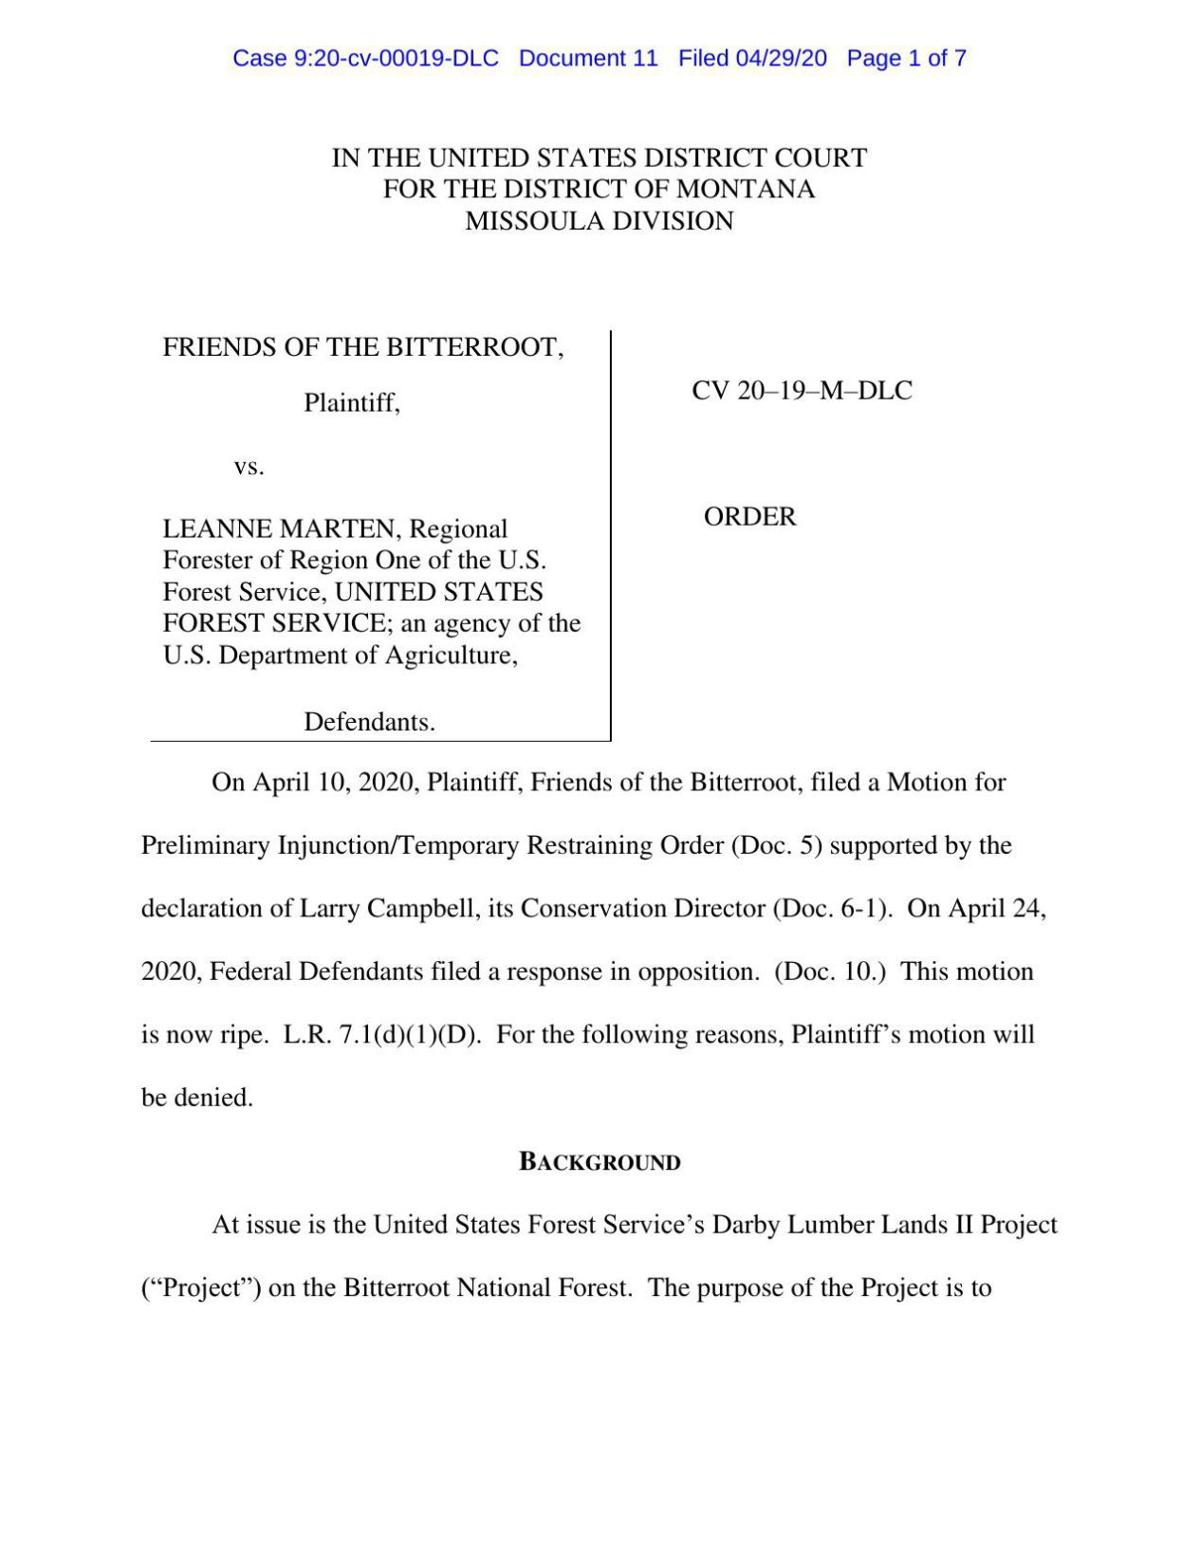 Ruling on Friends of Bitterroot's injunction request